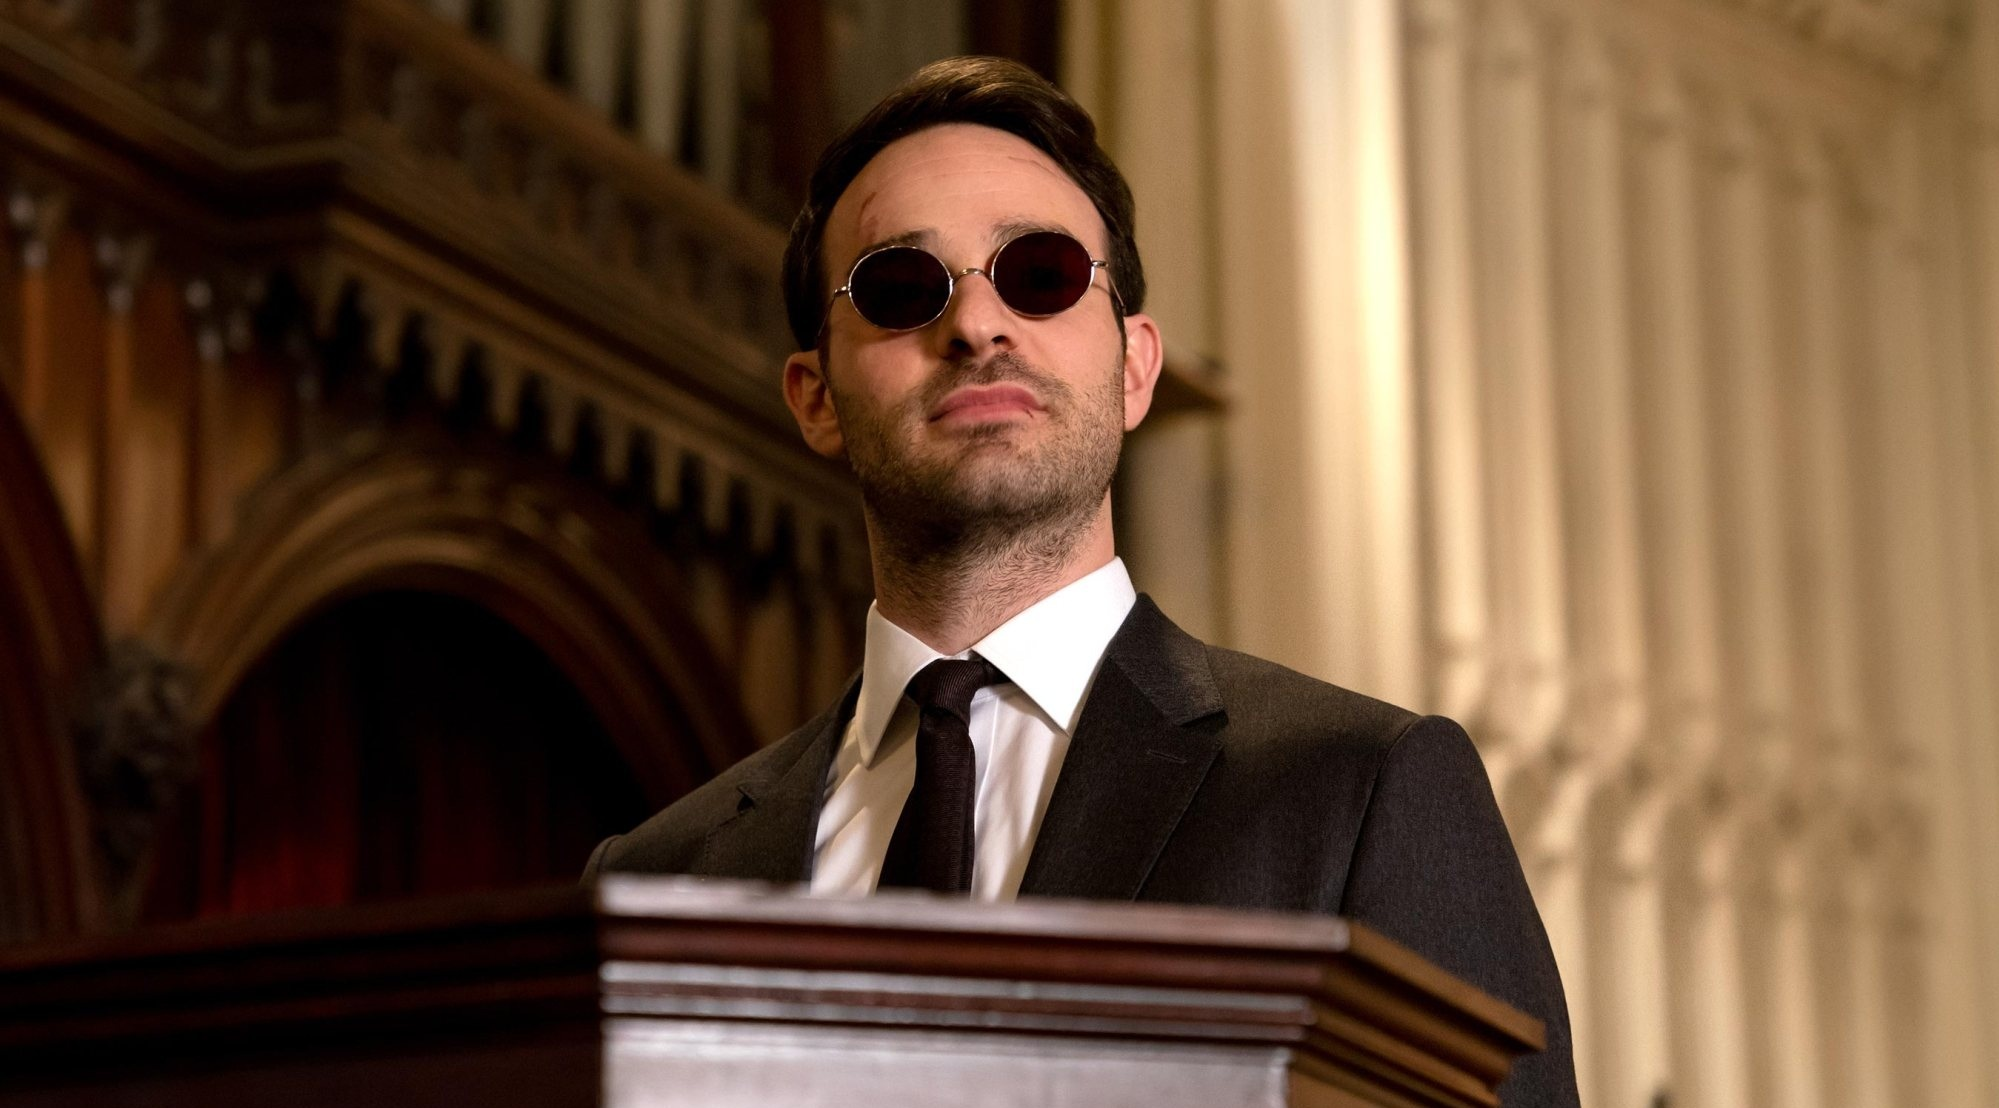 Charlie Cox breaks silence on Daredevil cancellation: 'I'm very saddened' - by shirley li, ew.com